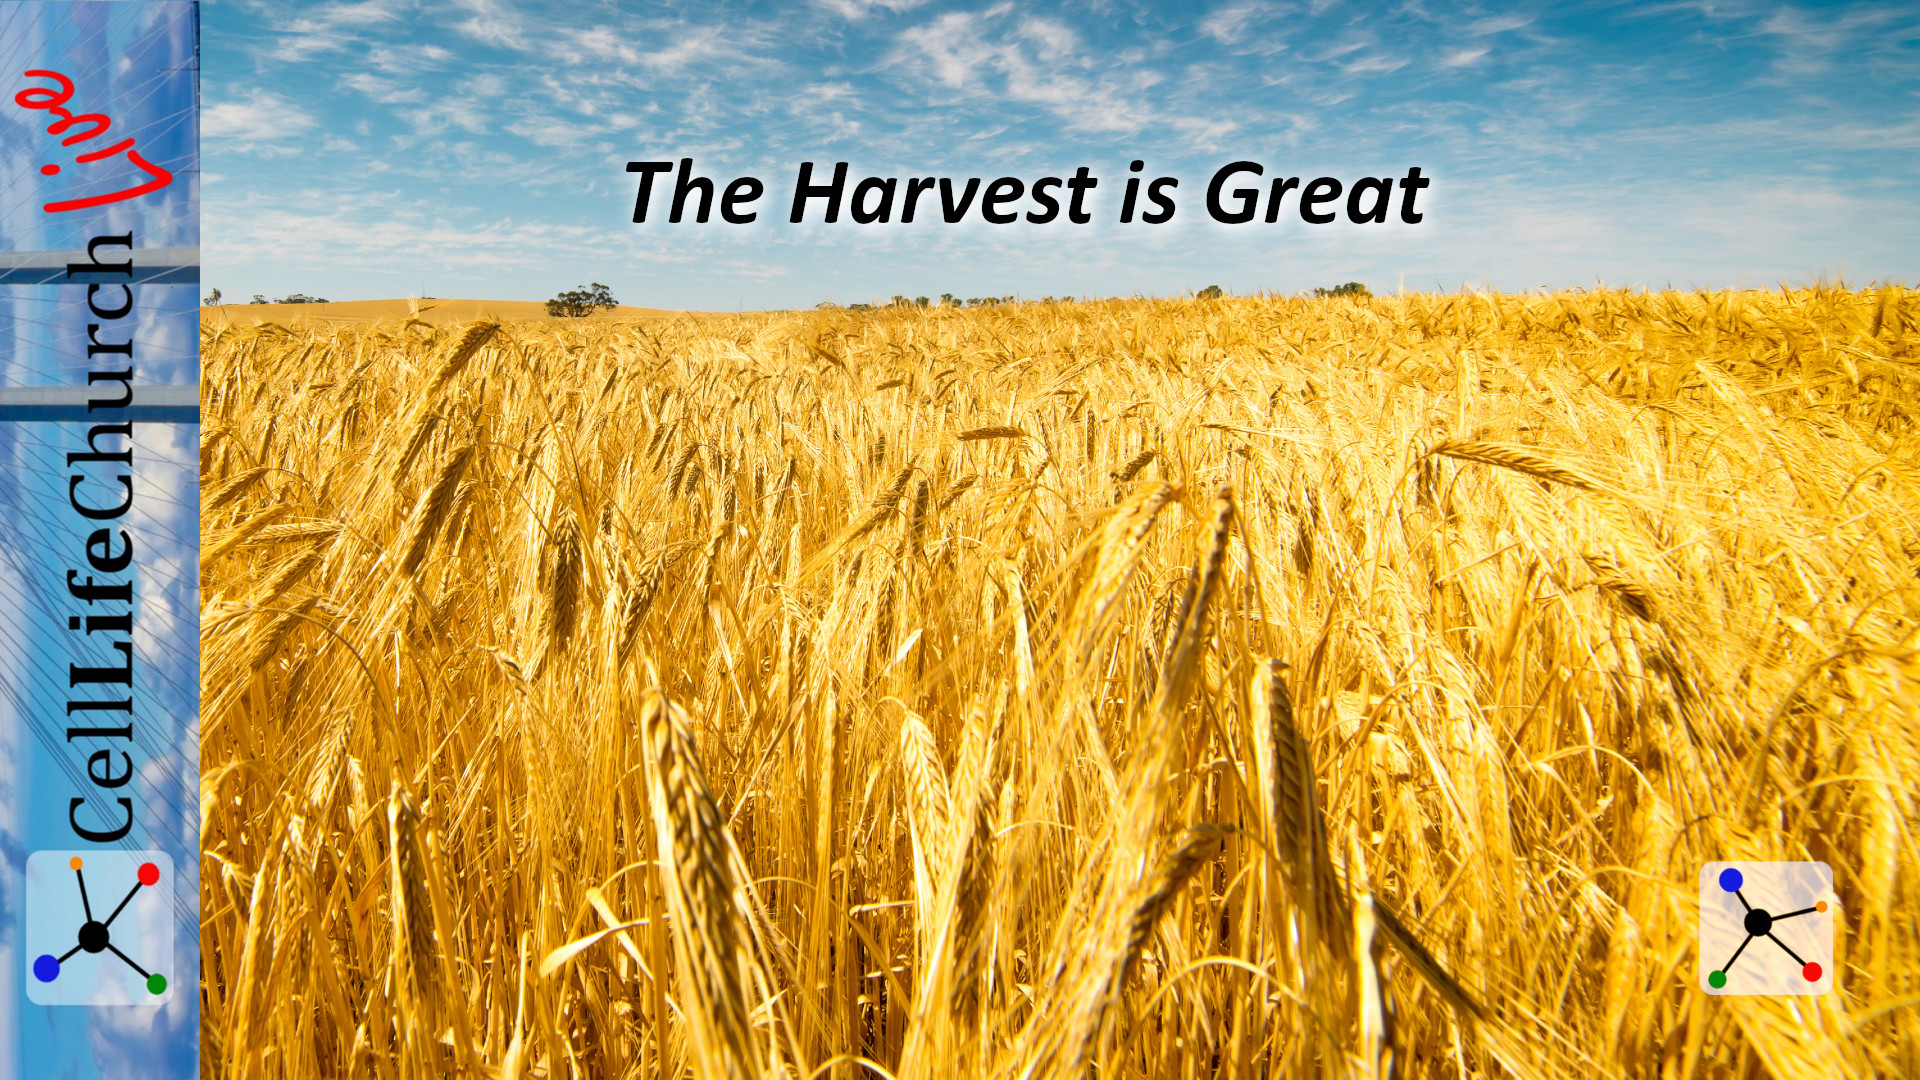 The Harvest Is Great